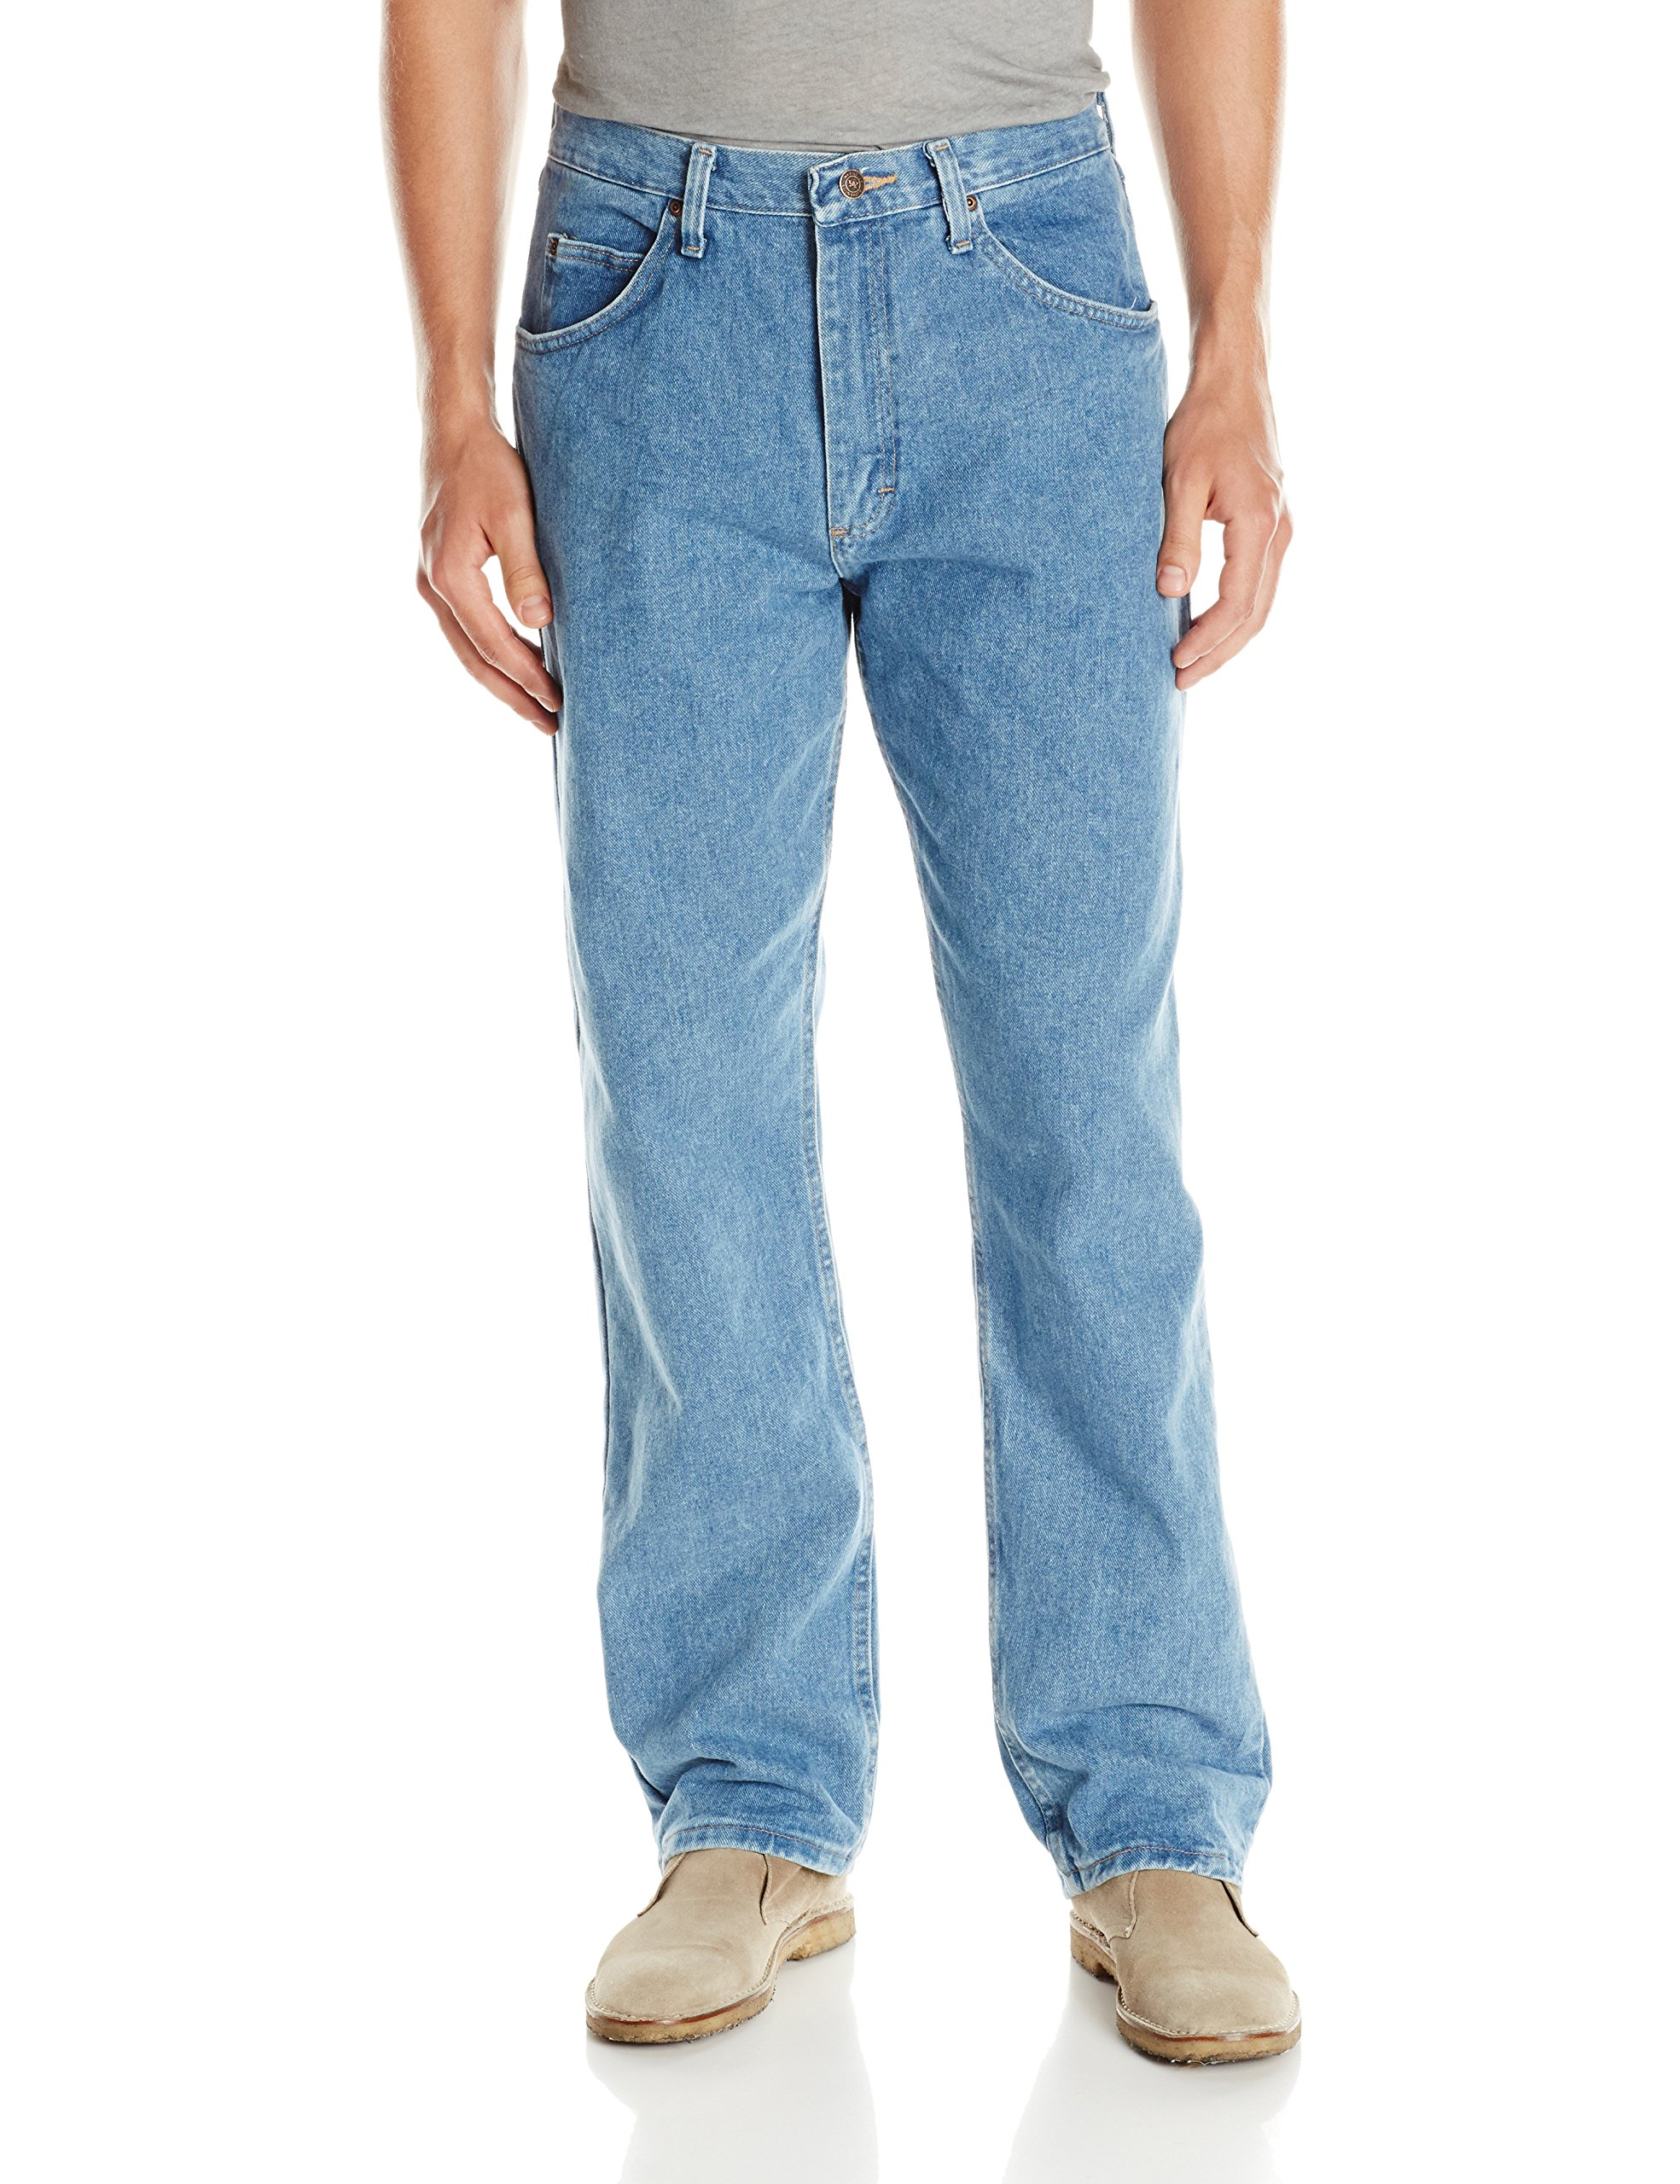 Wrangler Authentics Men's Classic Relaxed Fit Jean, Stone Bleach, 36x32